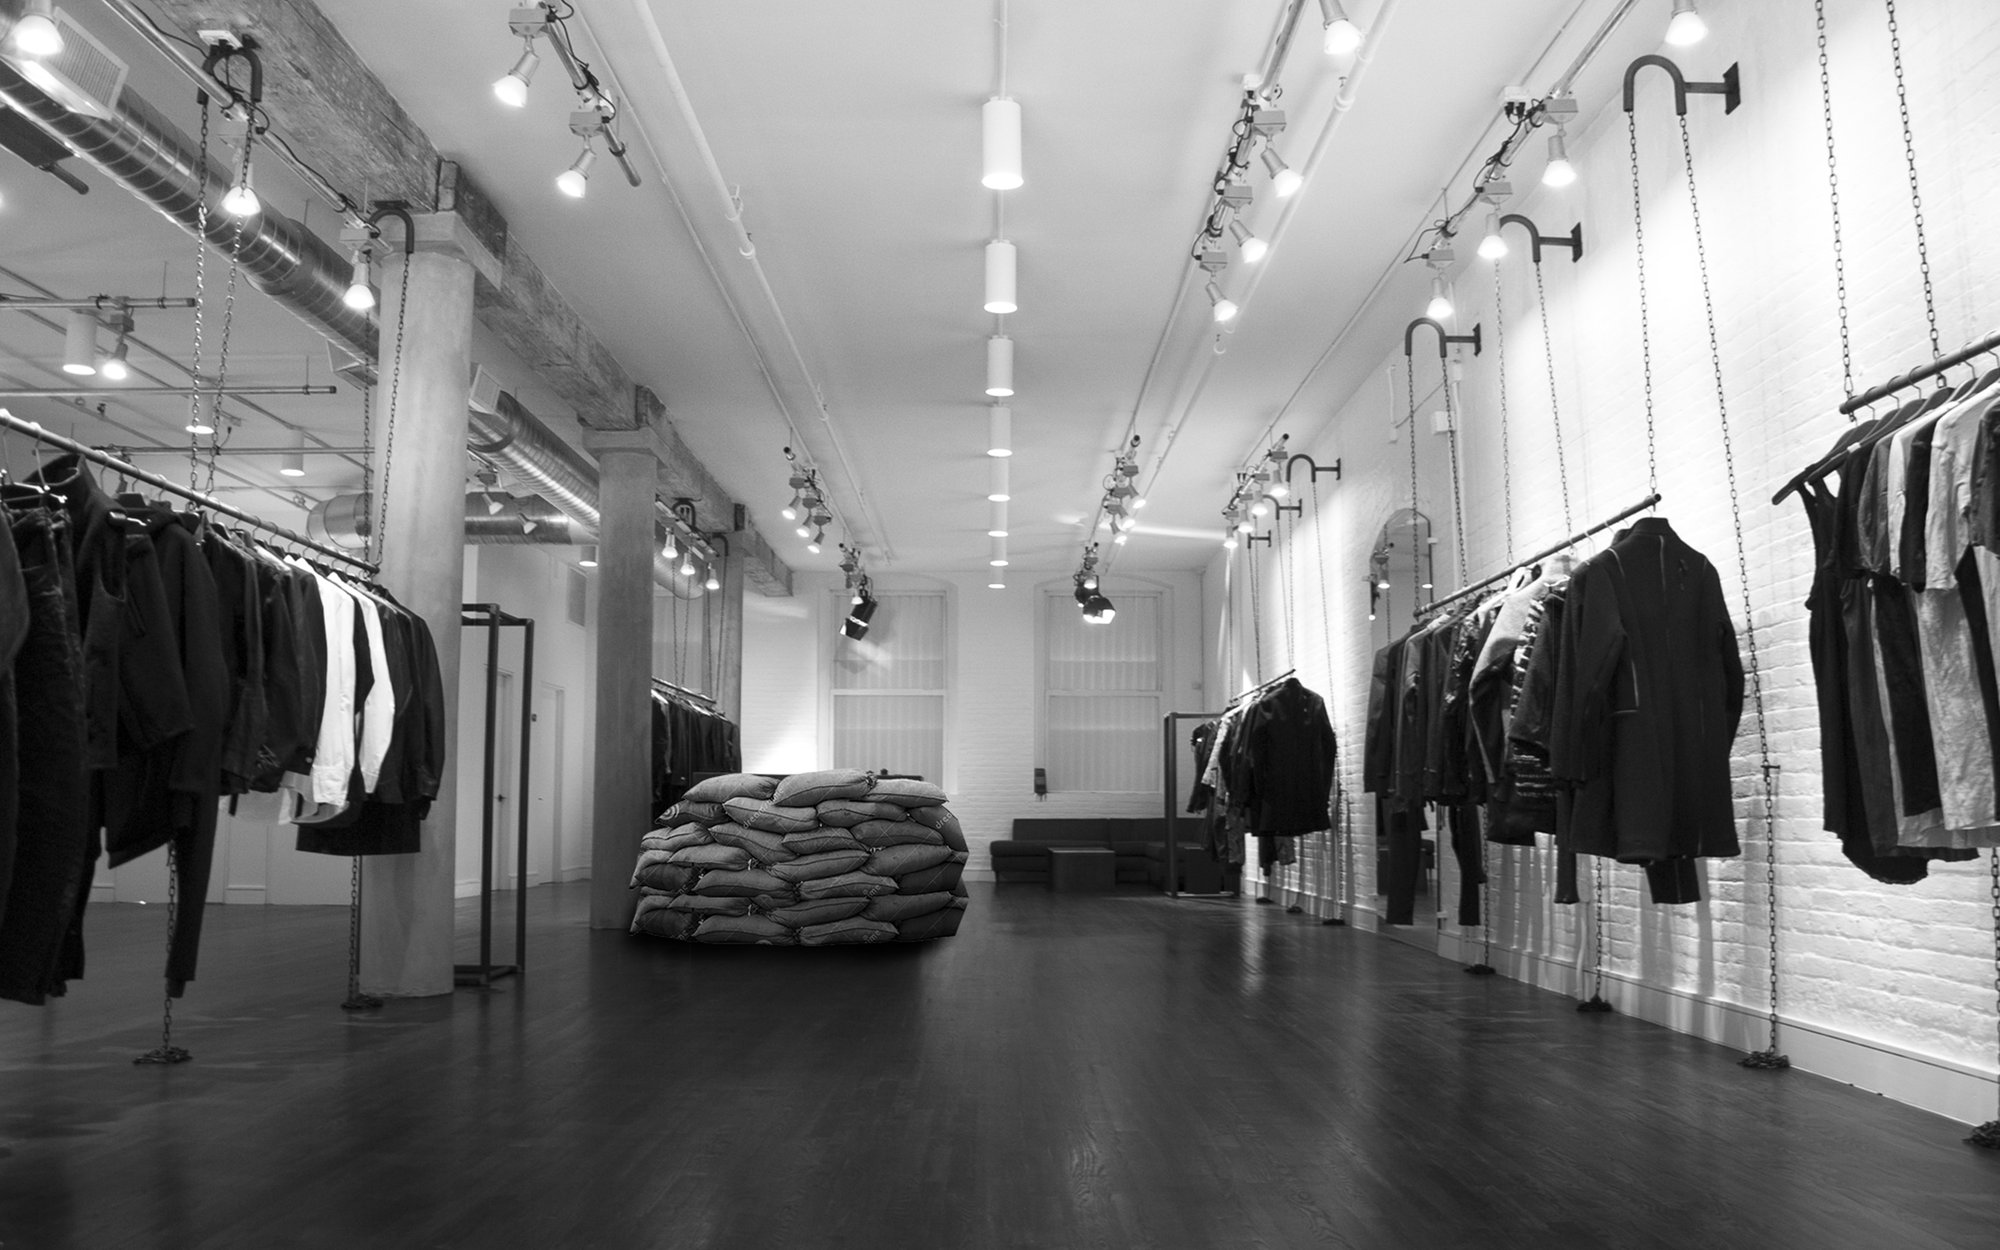 The concept: Turn the Store into a war-zone using sandbags.